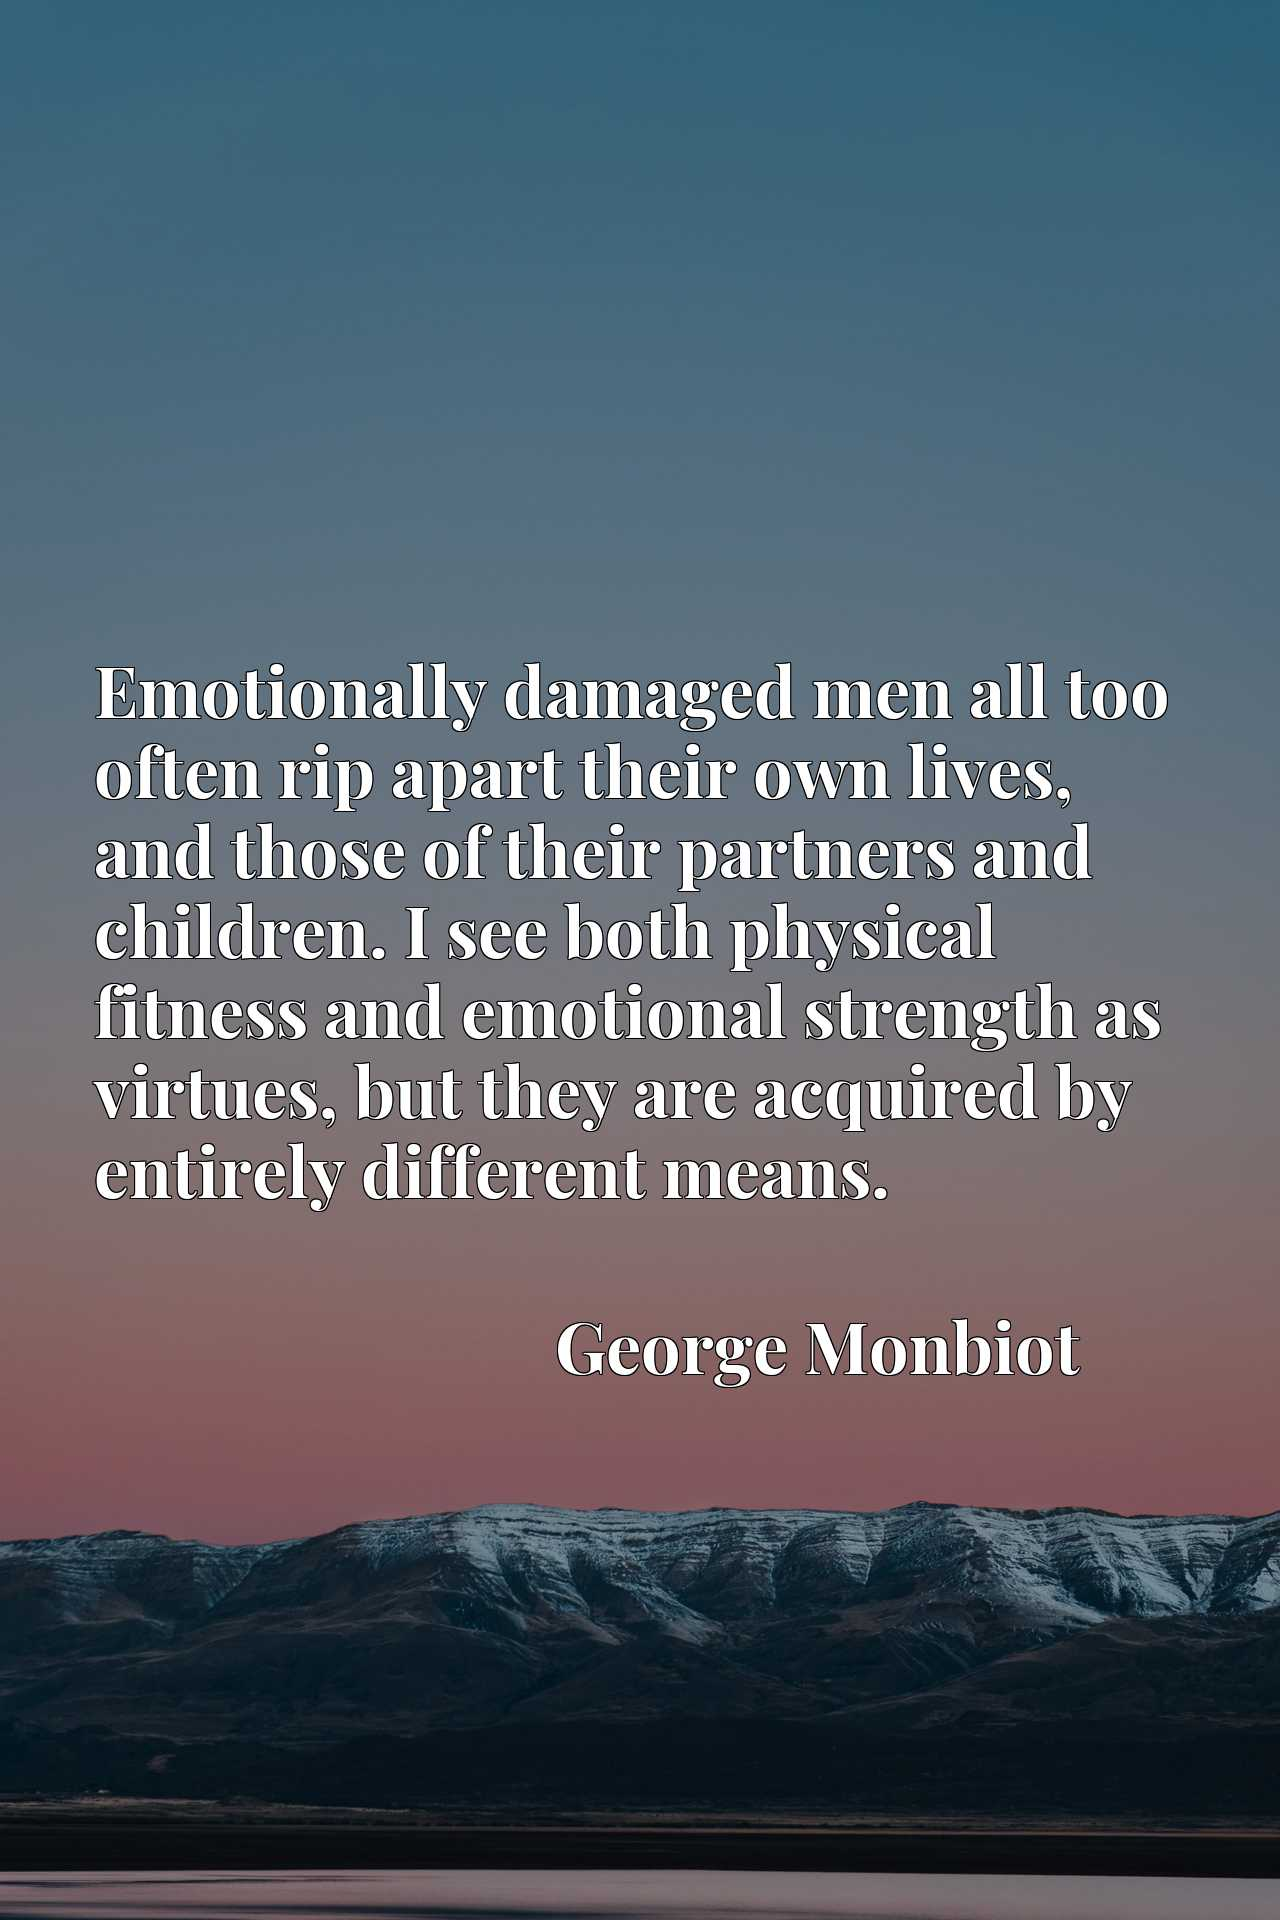 Emotionally damaged men all too often rip apart their own lives, and those of their partners and children. I see both physical fitness and emotional strength as virtues, but they are acquired by entirely different means.